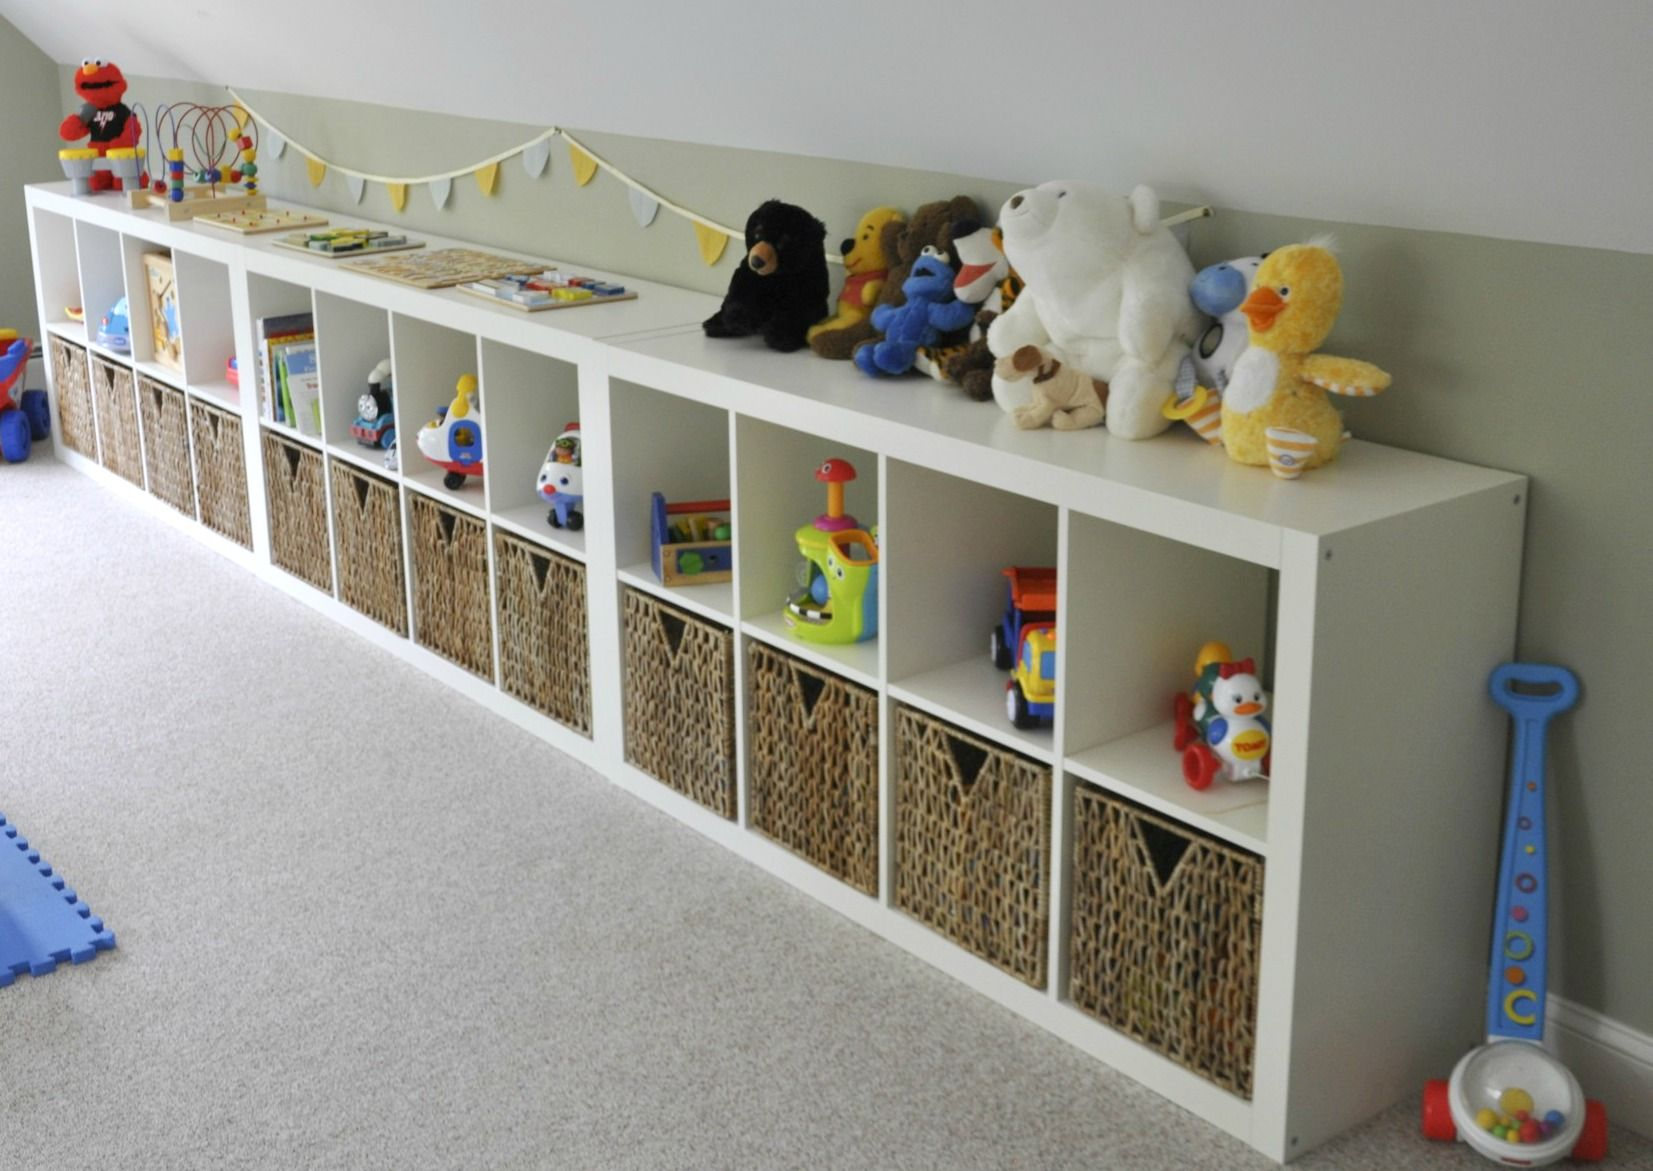 Ikea Family Angebote Schlafzimmer Ikea Expedit Playroom Storage Reveal Home Kinderzimmer